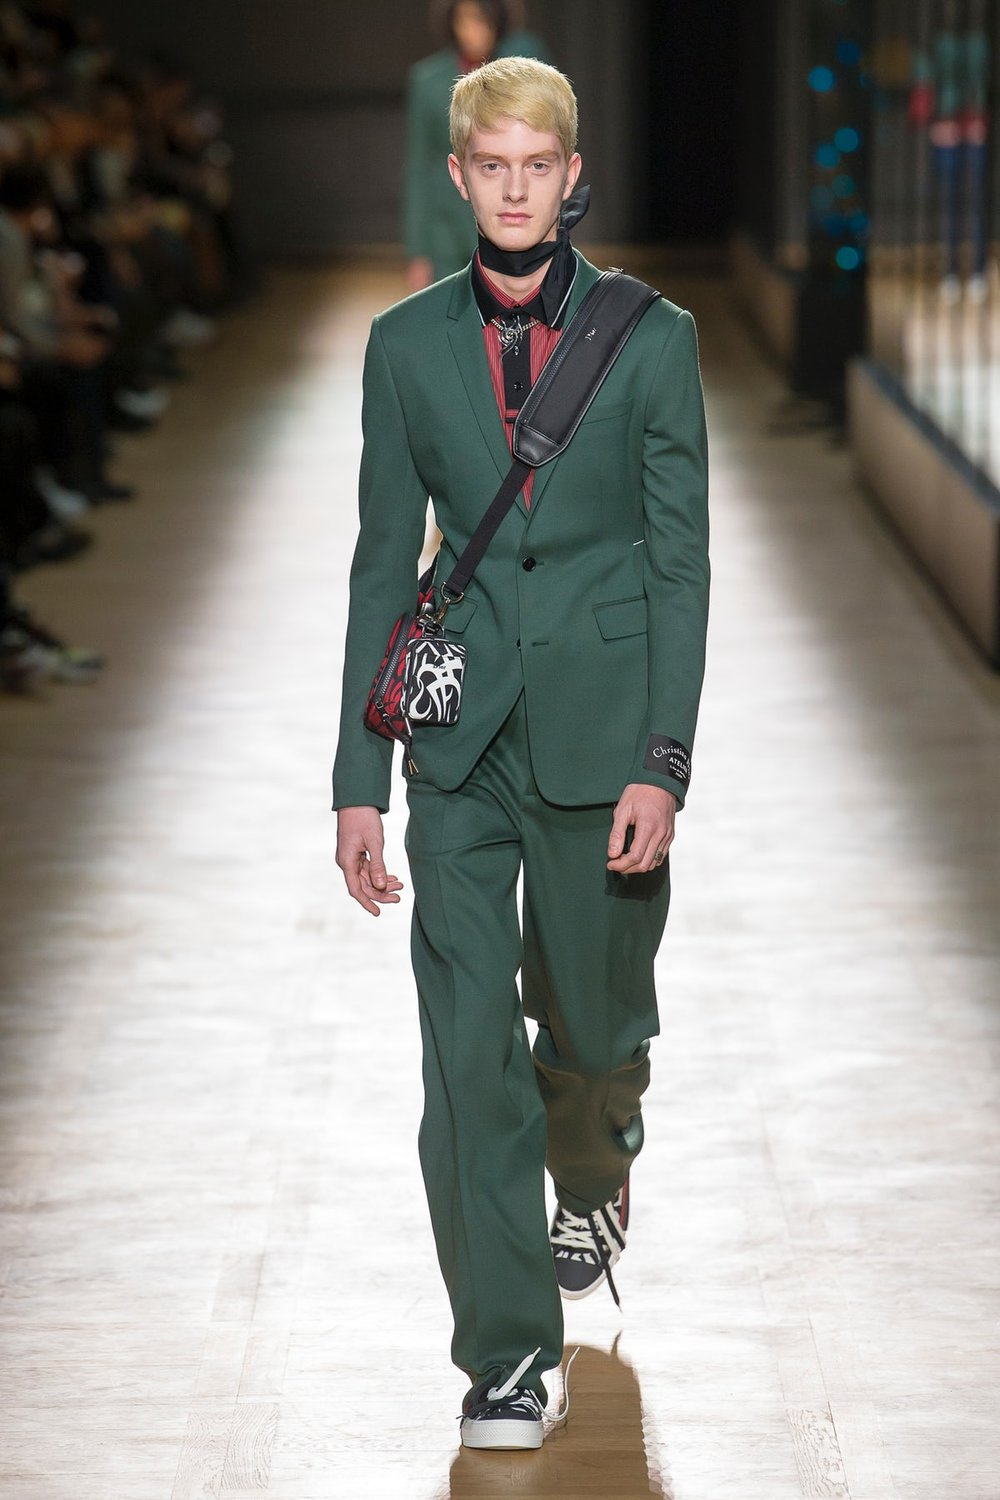 dior_homme_look_25_menswear_autumn_2018.jpeg